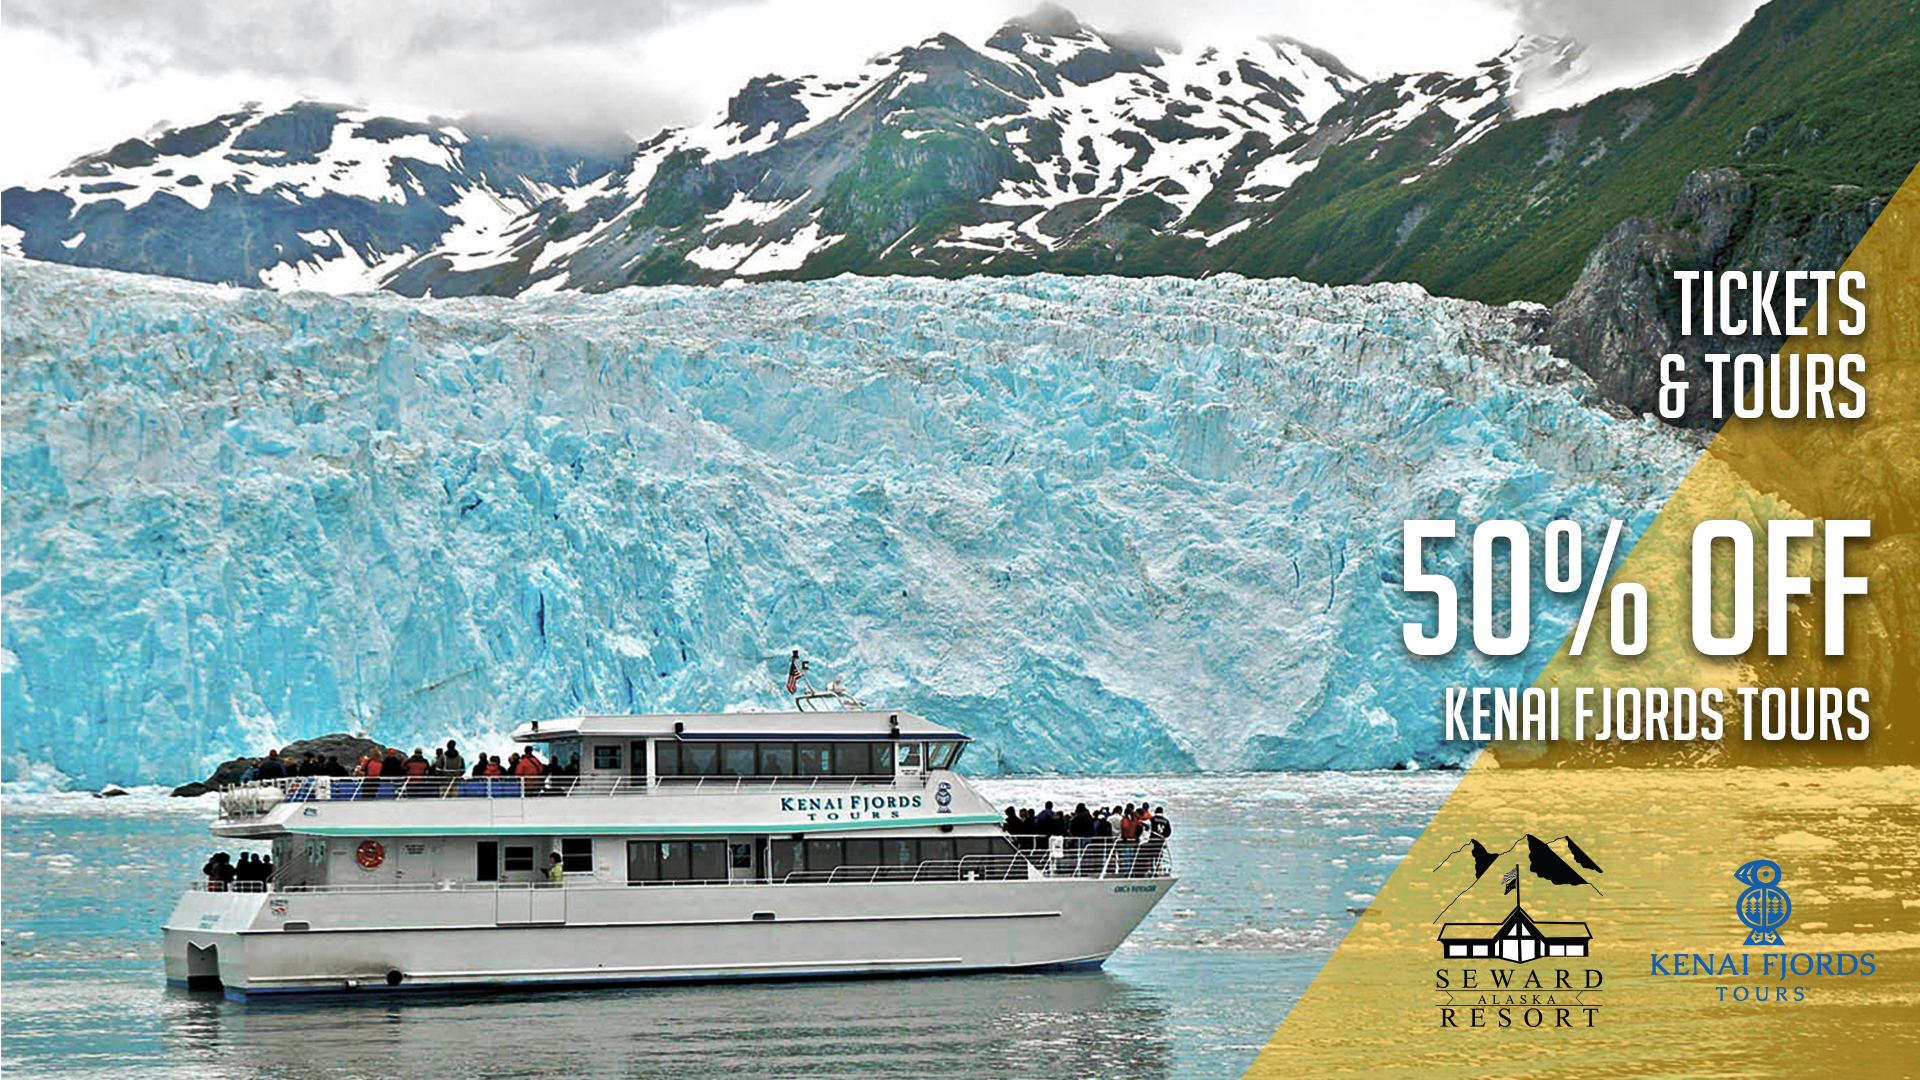 Seward Military Resort Tickets & Tours - Kenai Fjords Tours 50% Off Sale on March 8, 2018